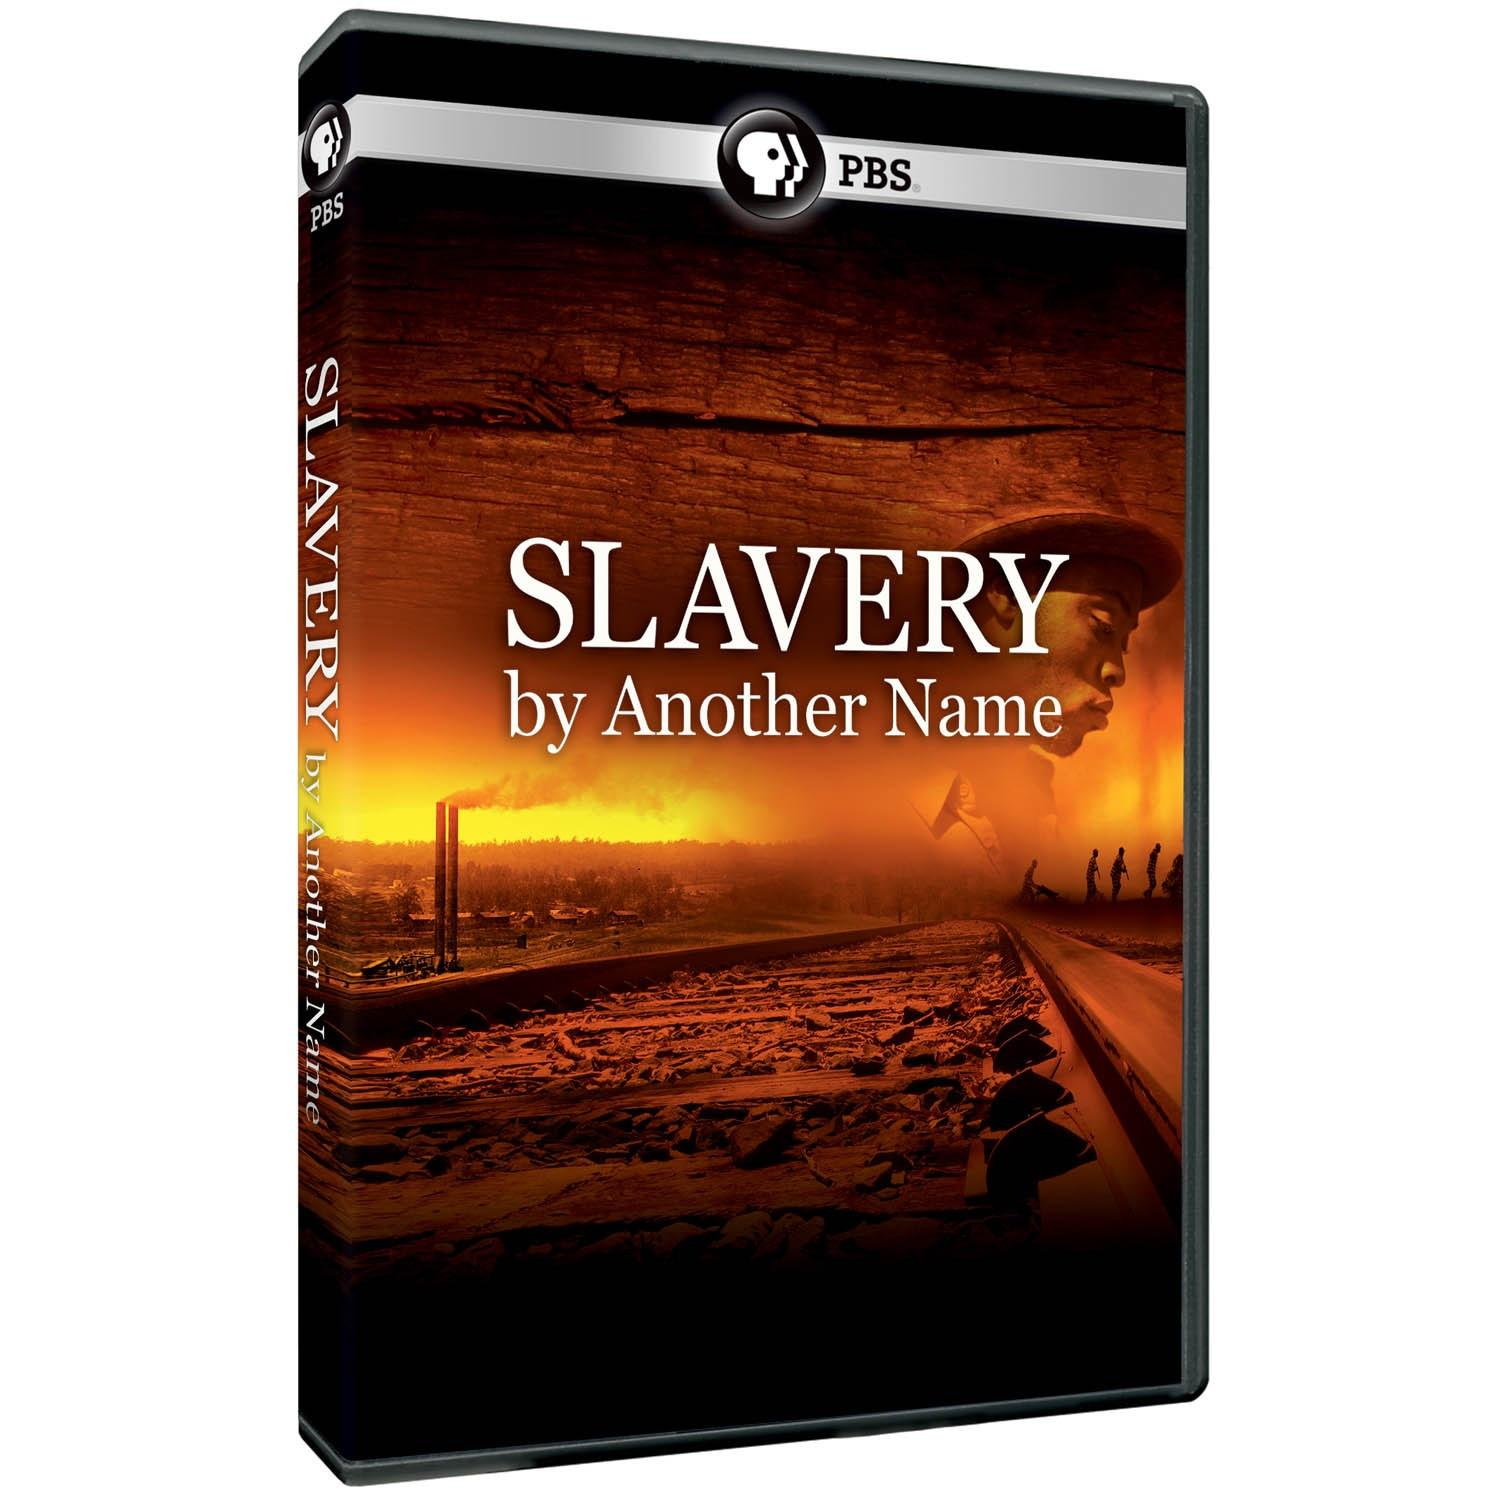 Own the Film Slavery by Another Name